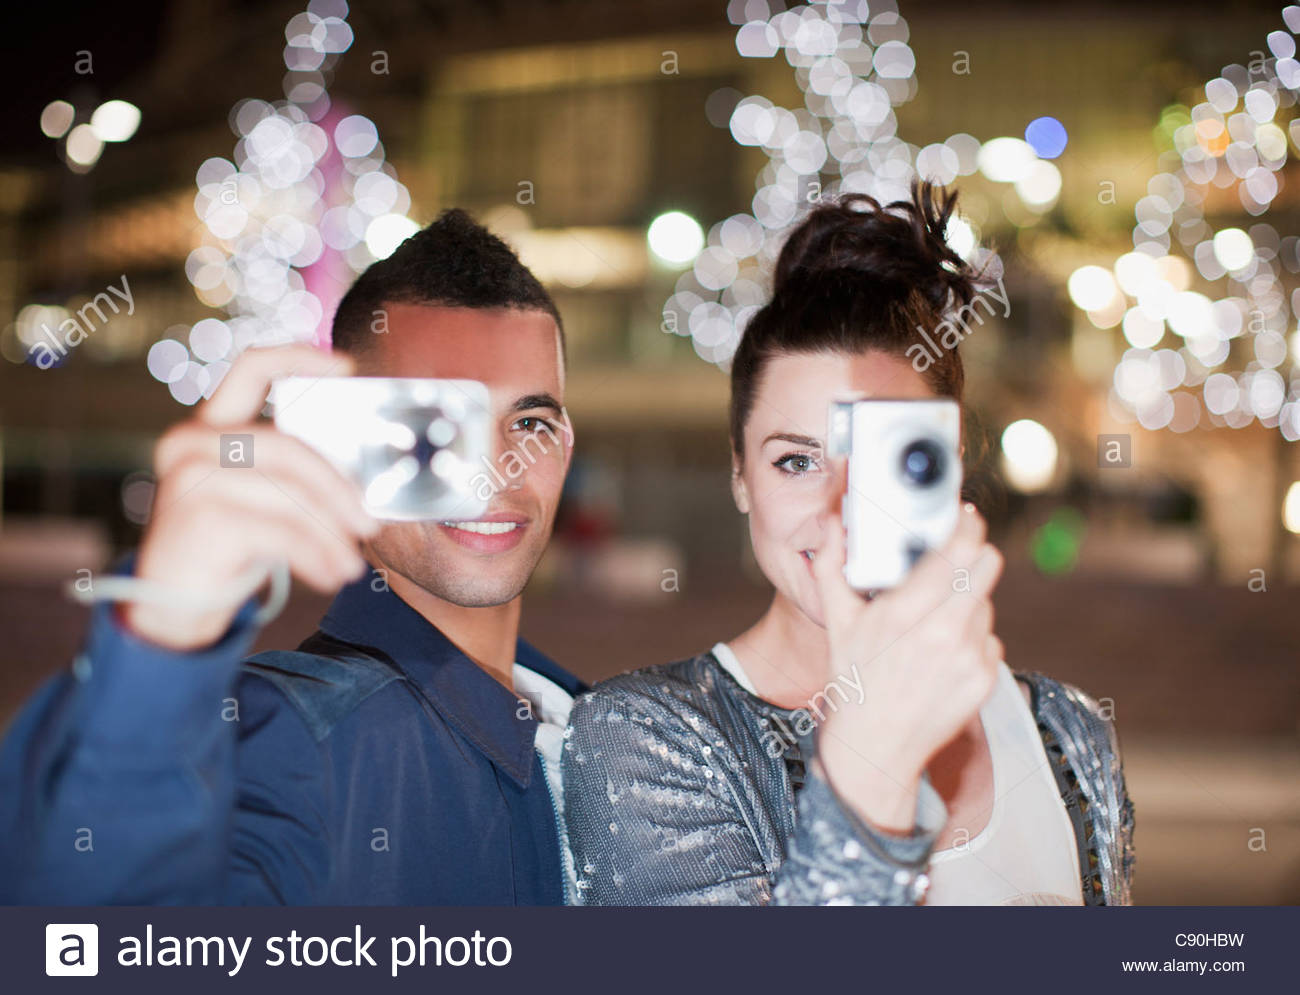 Couple taking pictures on city street at night - Stock Image